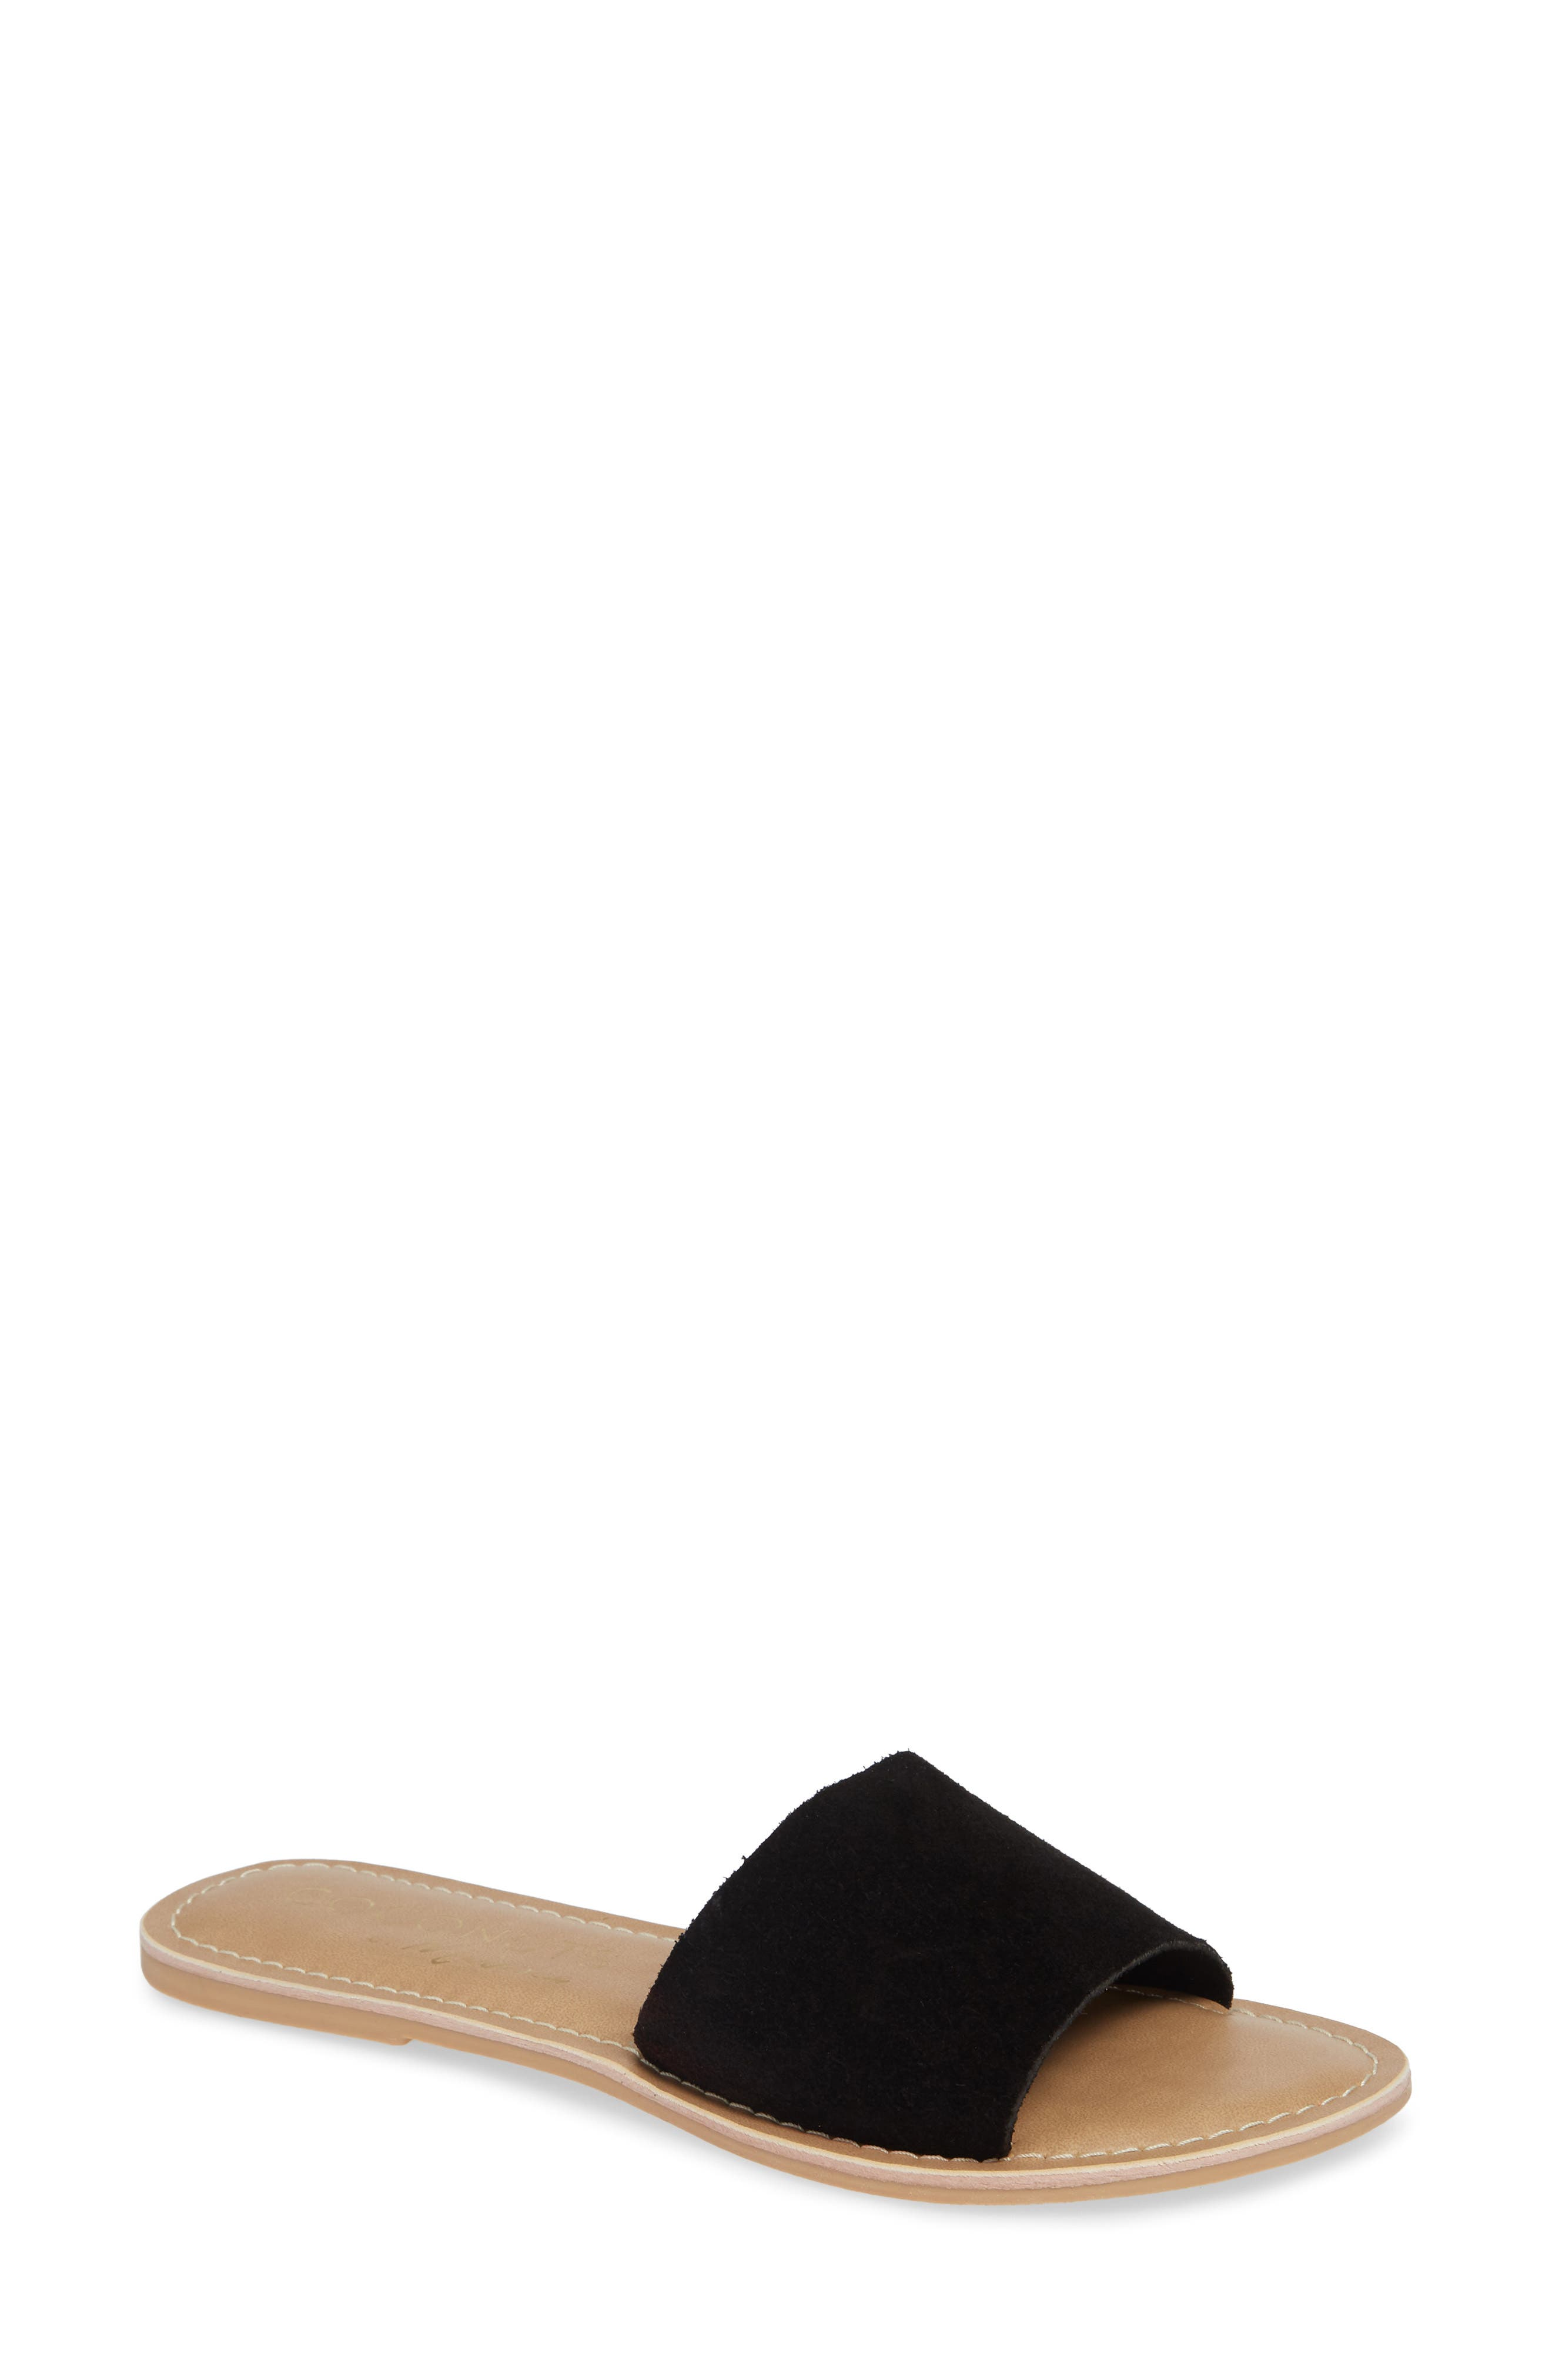 Cabana Slide Sandal,                             Main thumbnail 1, color,                             BLACK SUEDE